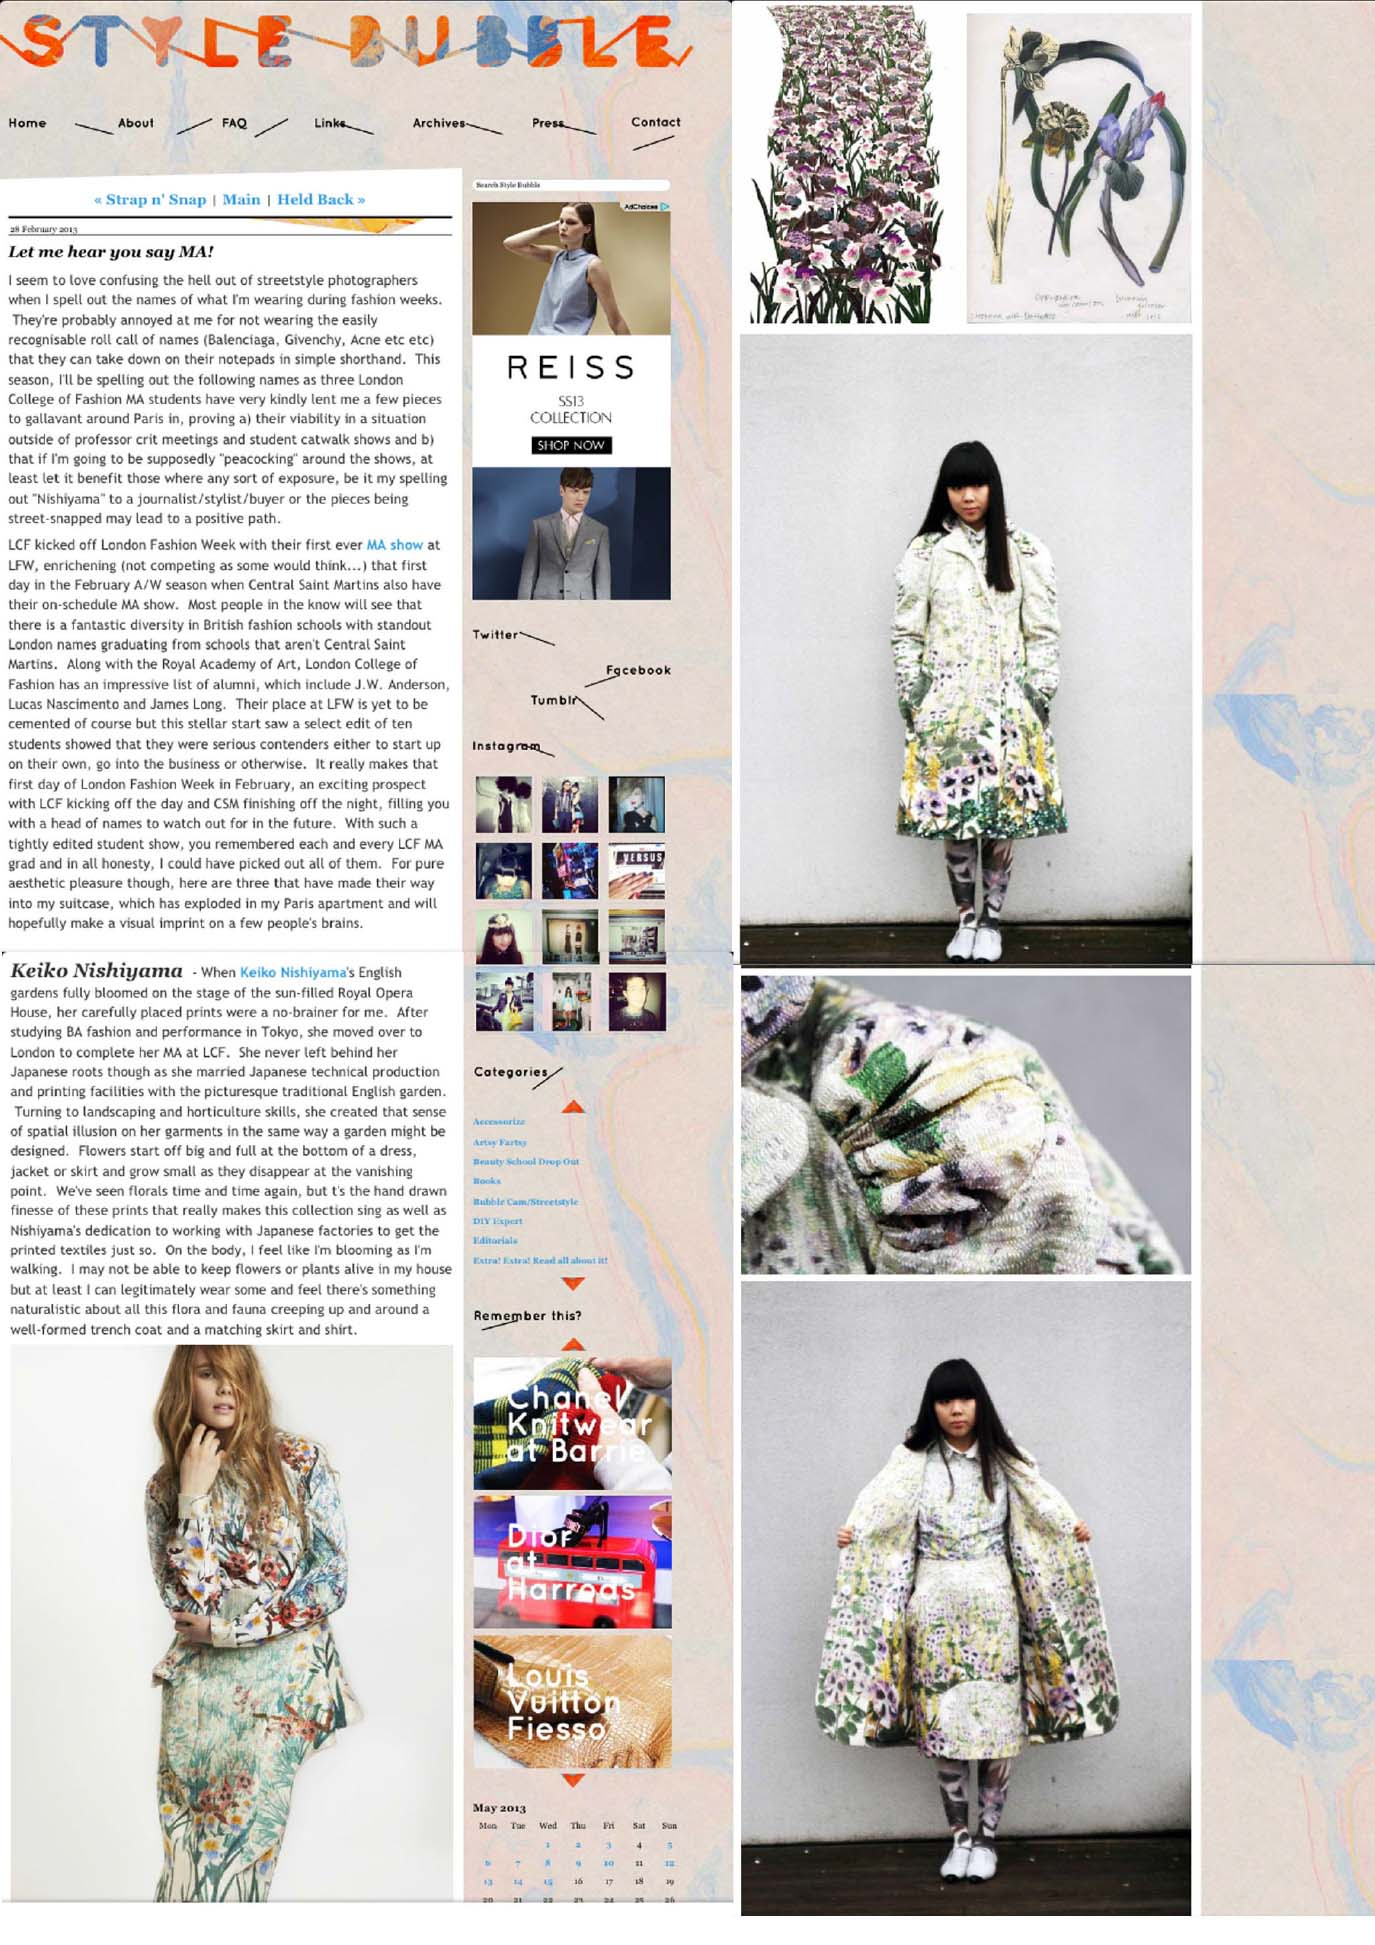 STYLE BUBBLE - February 2013